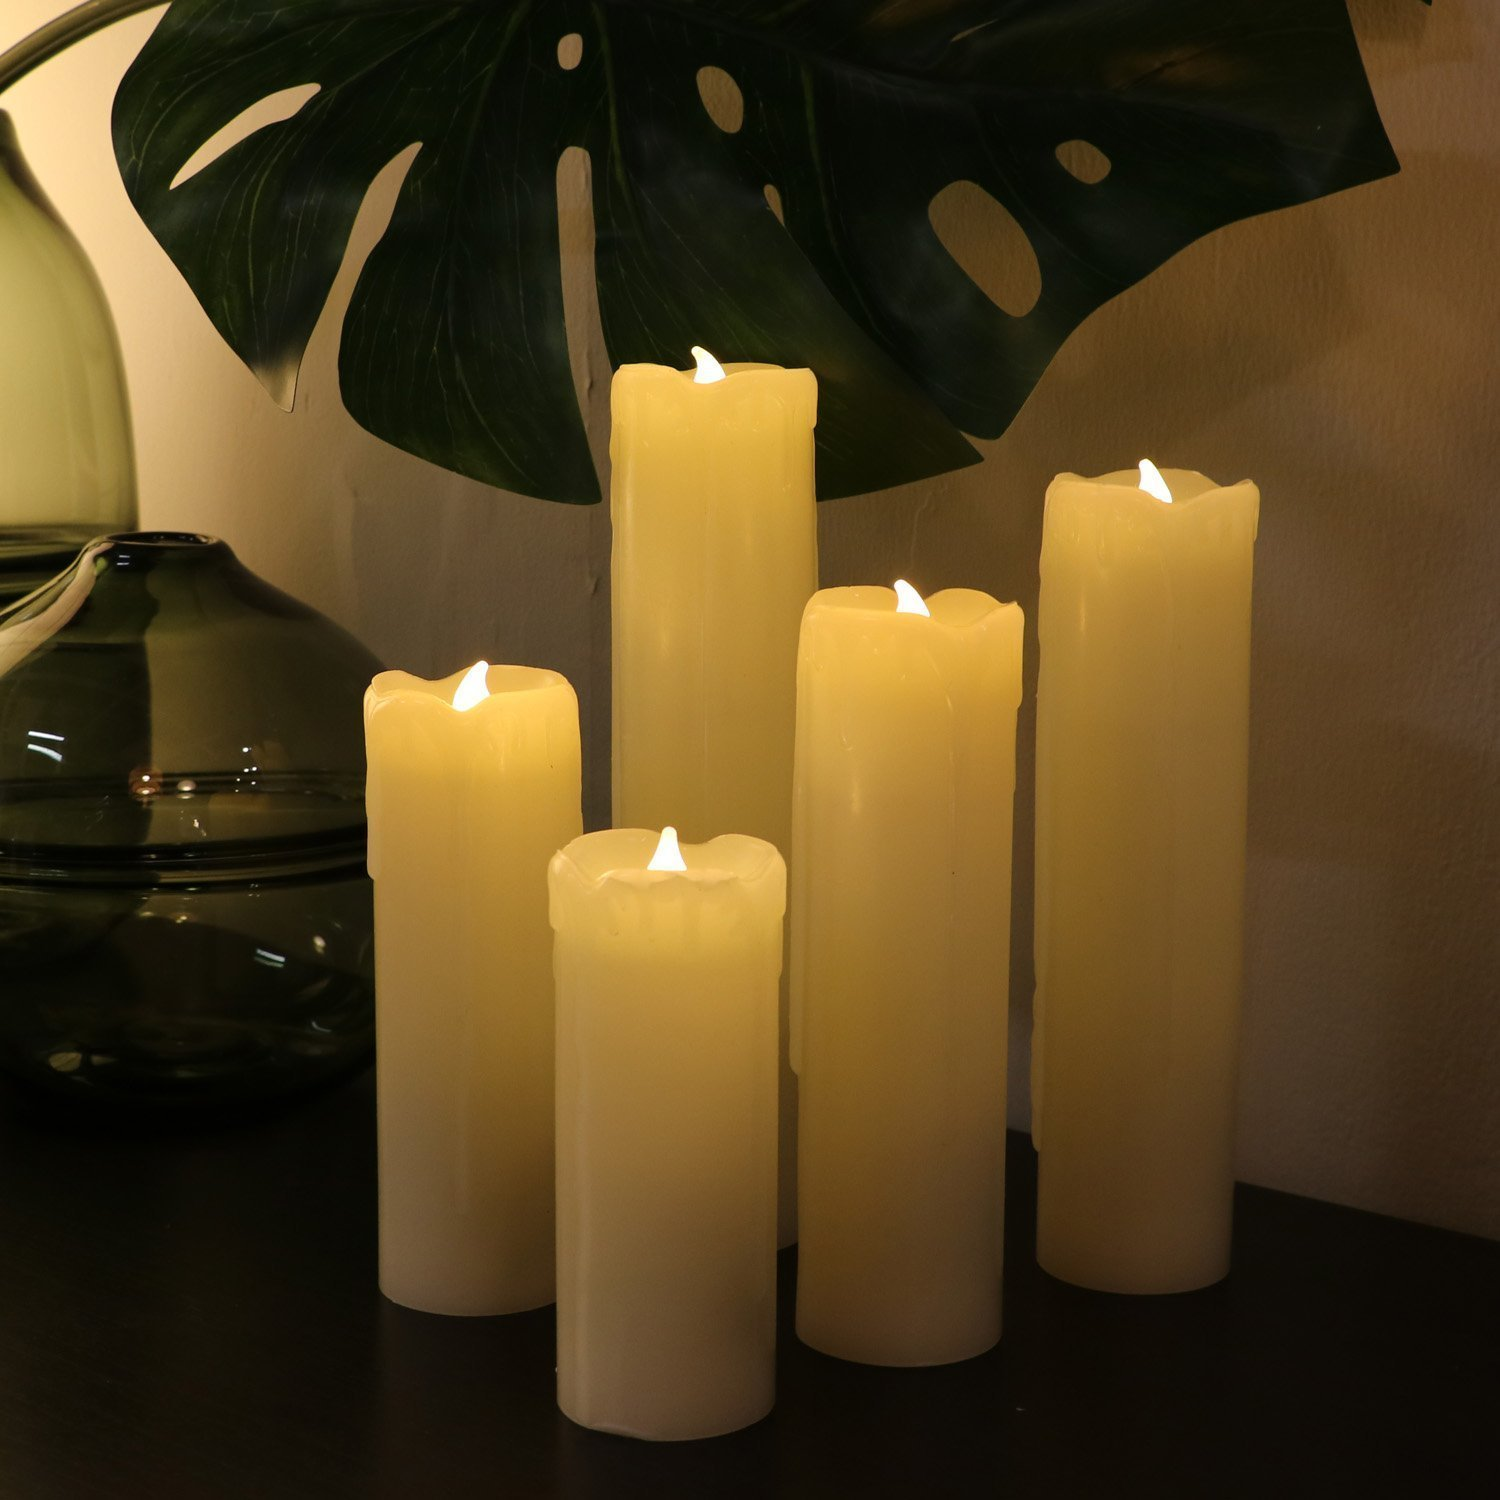 Set of 8 Flameless LED Candles with Timer, Battery Operated Candles with Remote Control, Ivory Wax Drip Finish, H4''/5''/6''/7''/8'', Long Lasting Batteies Included by Rhytsing (Image #3)